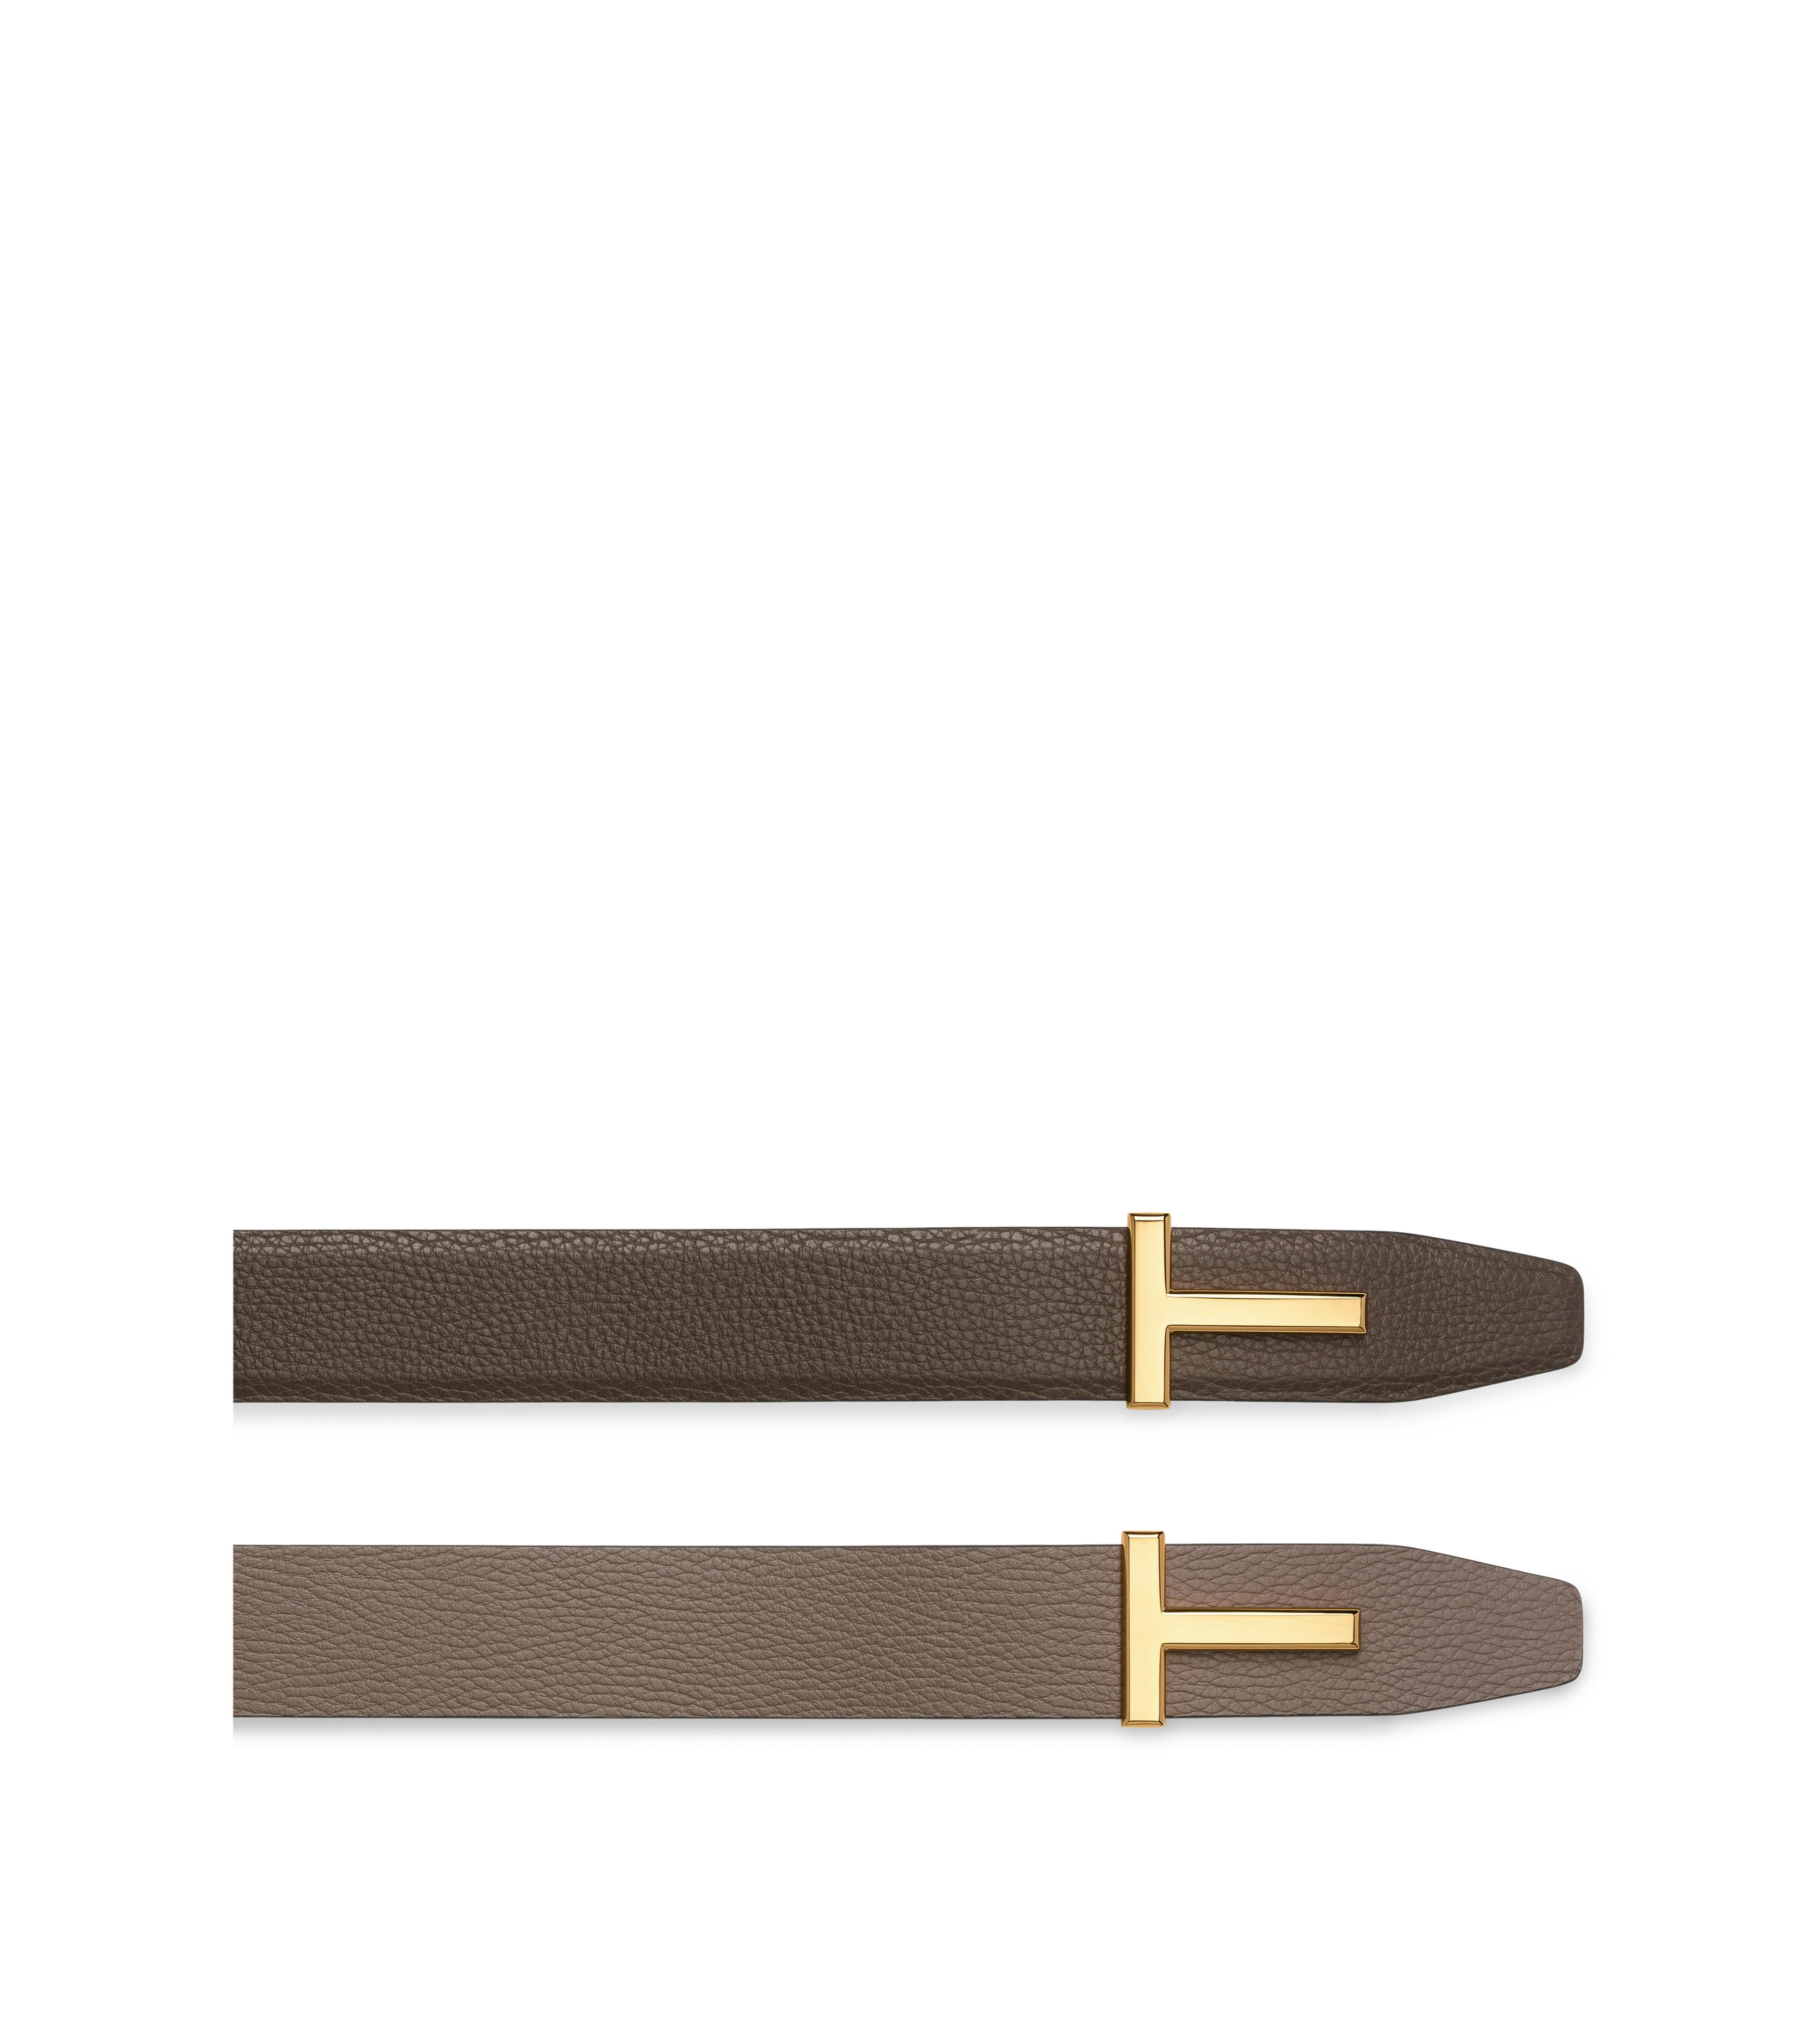 T BUCKLE REVERSIBLE BELT WITH GOLD BUCKLE B thumbnail